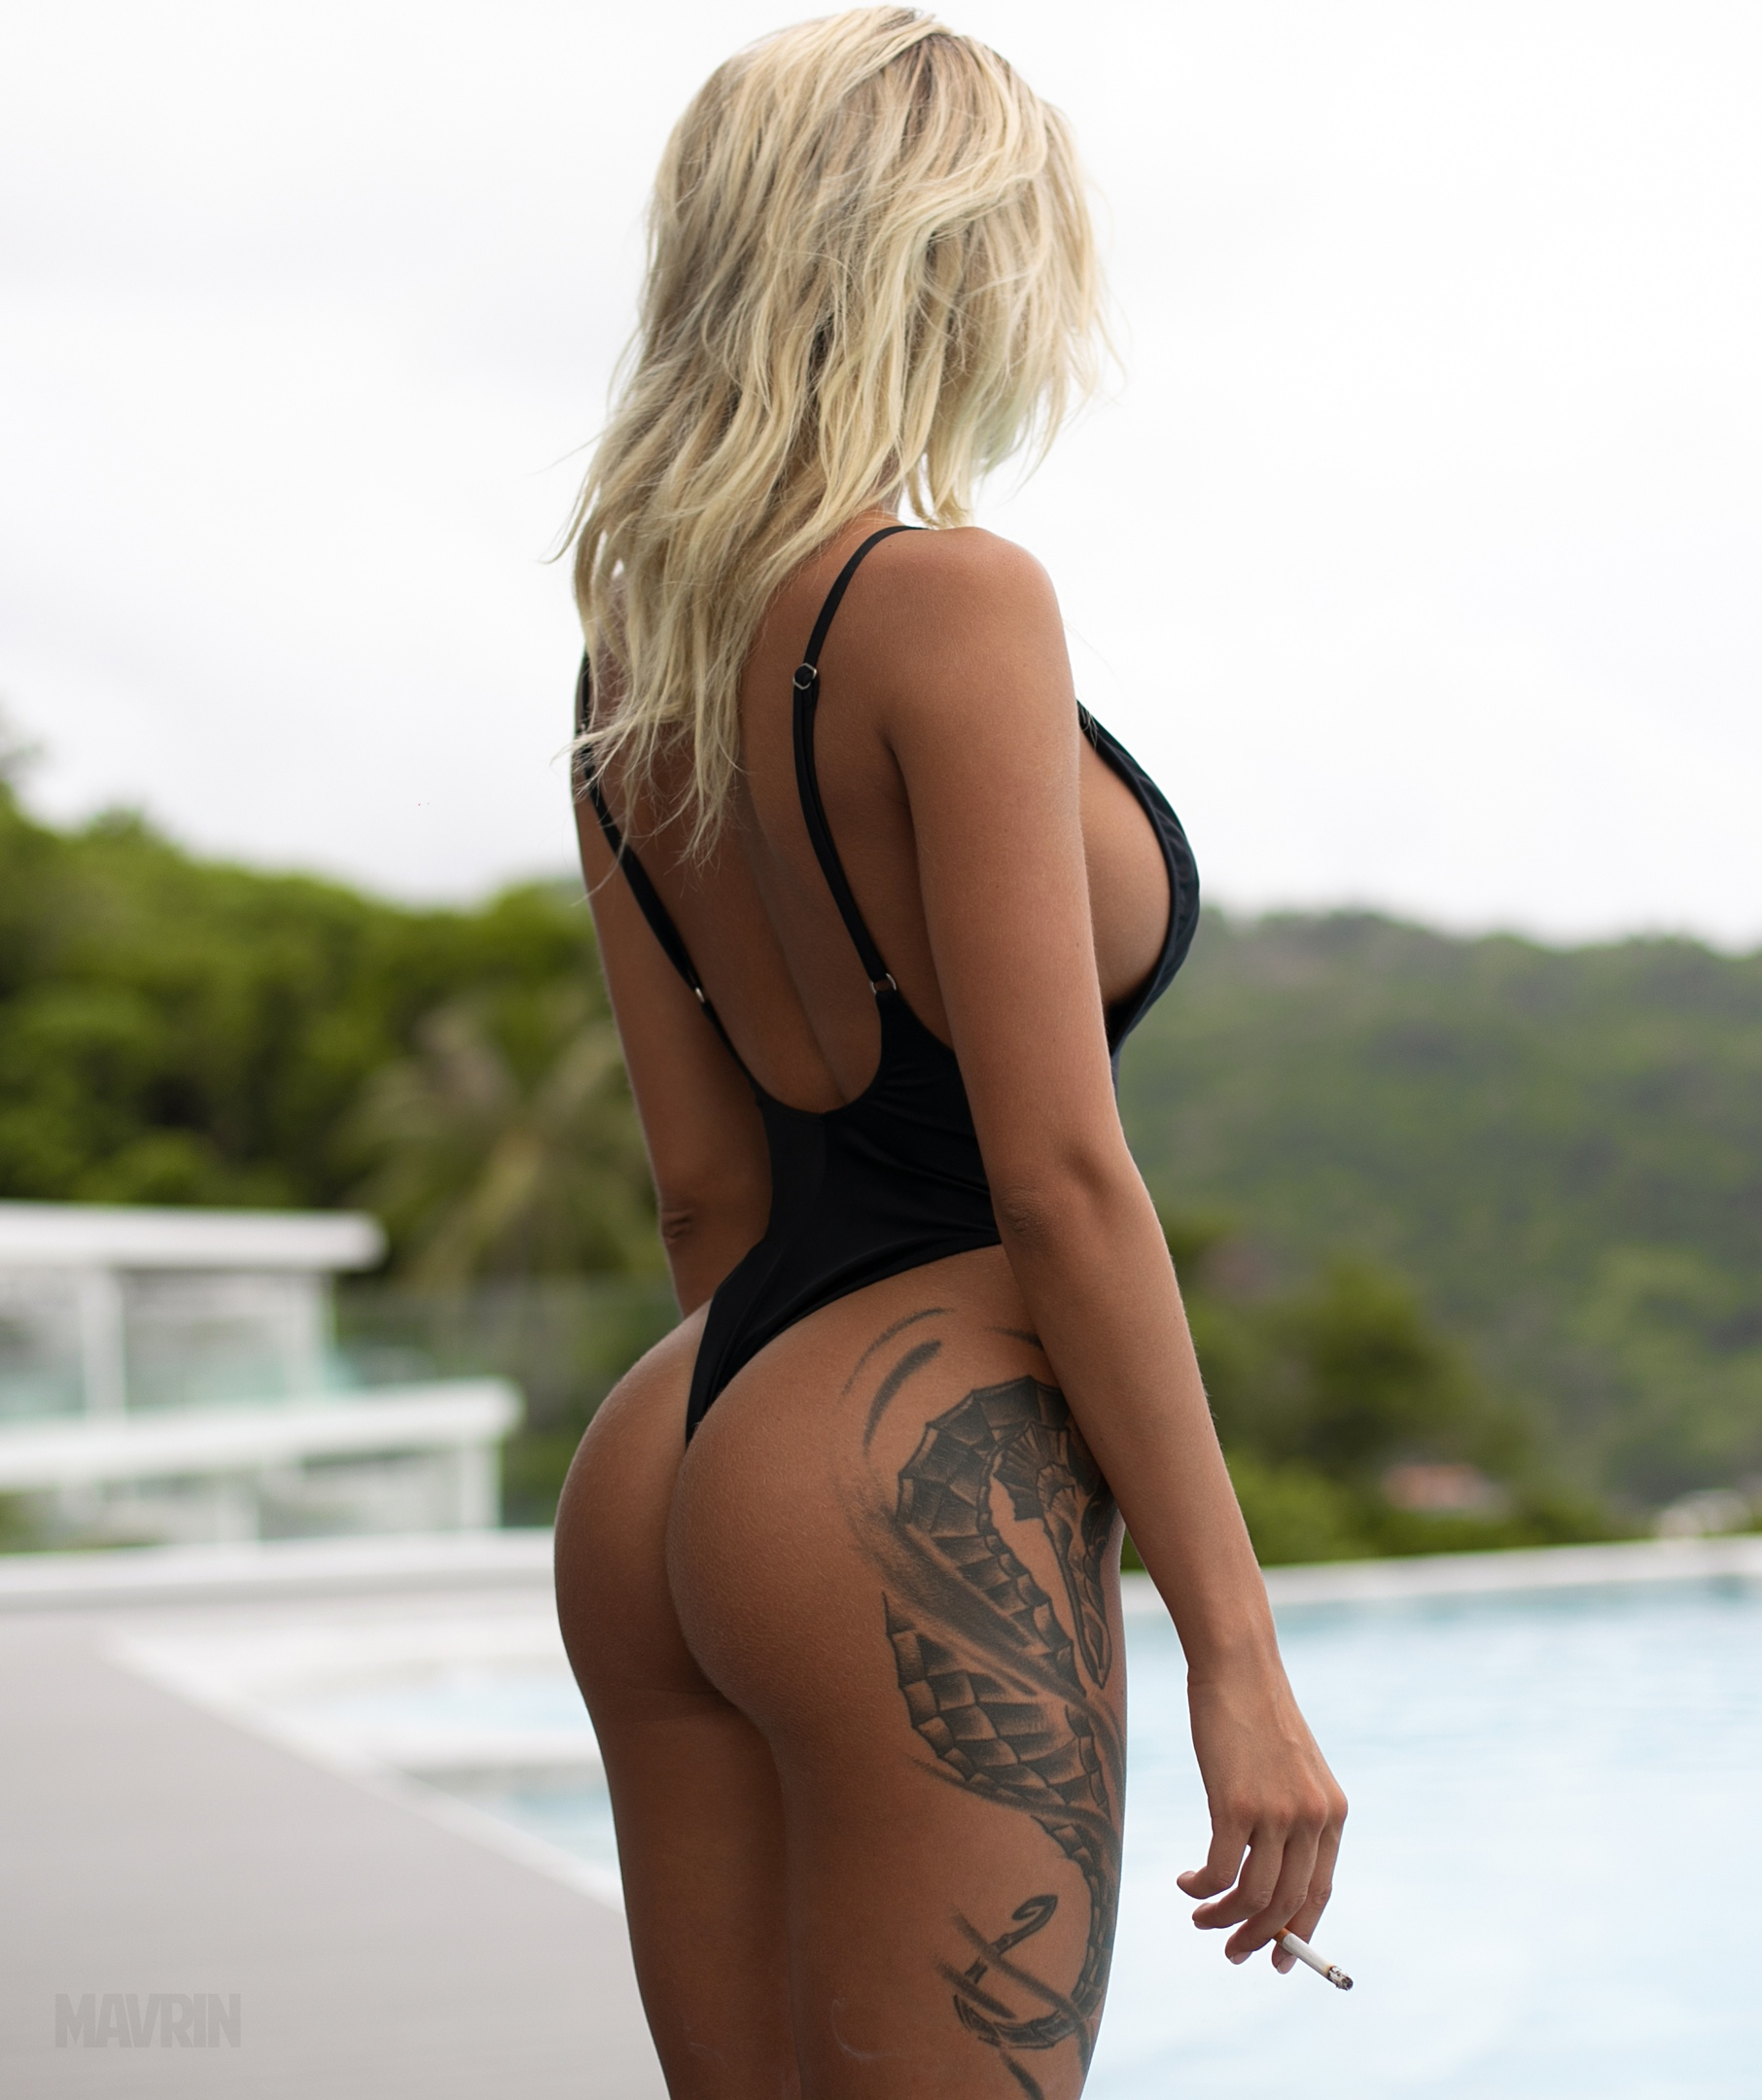 People 1812x2160 Aleksandr Mavrin blonde Russian women women outdoors model women depth of field butt floss tattoo back one-piece swimsuit cigarettes swimwear bodysuit portrait display Nata Lee